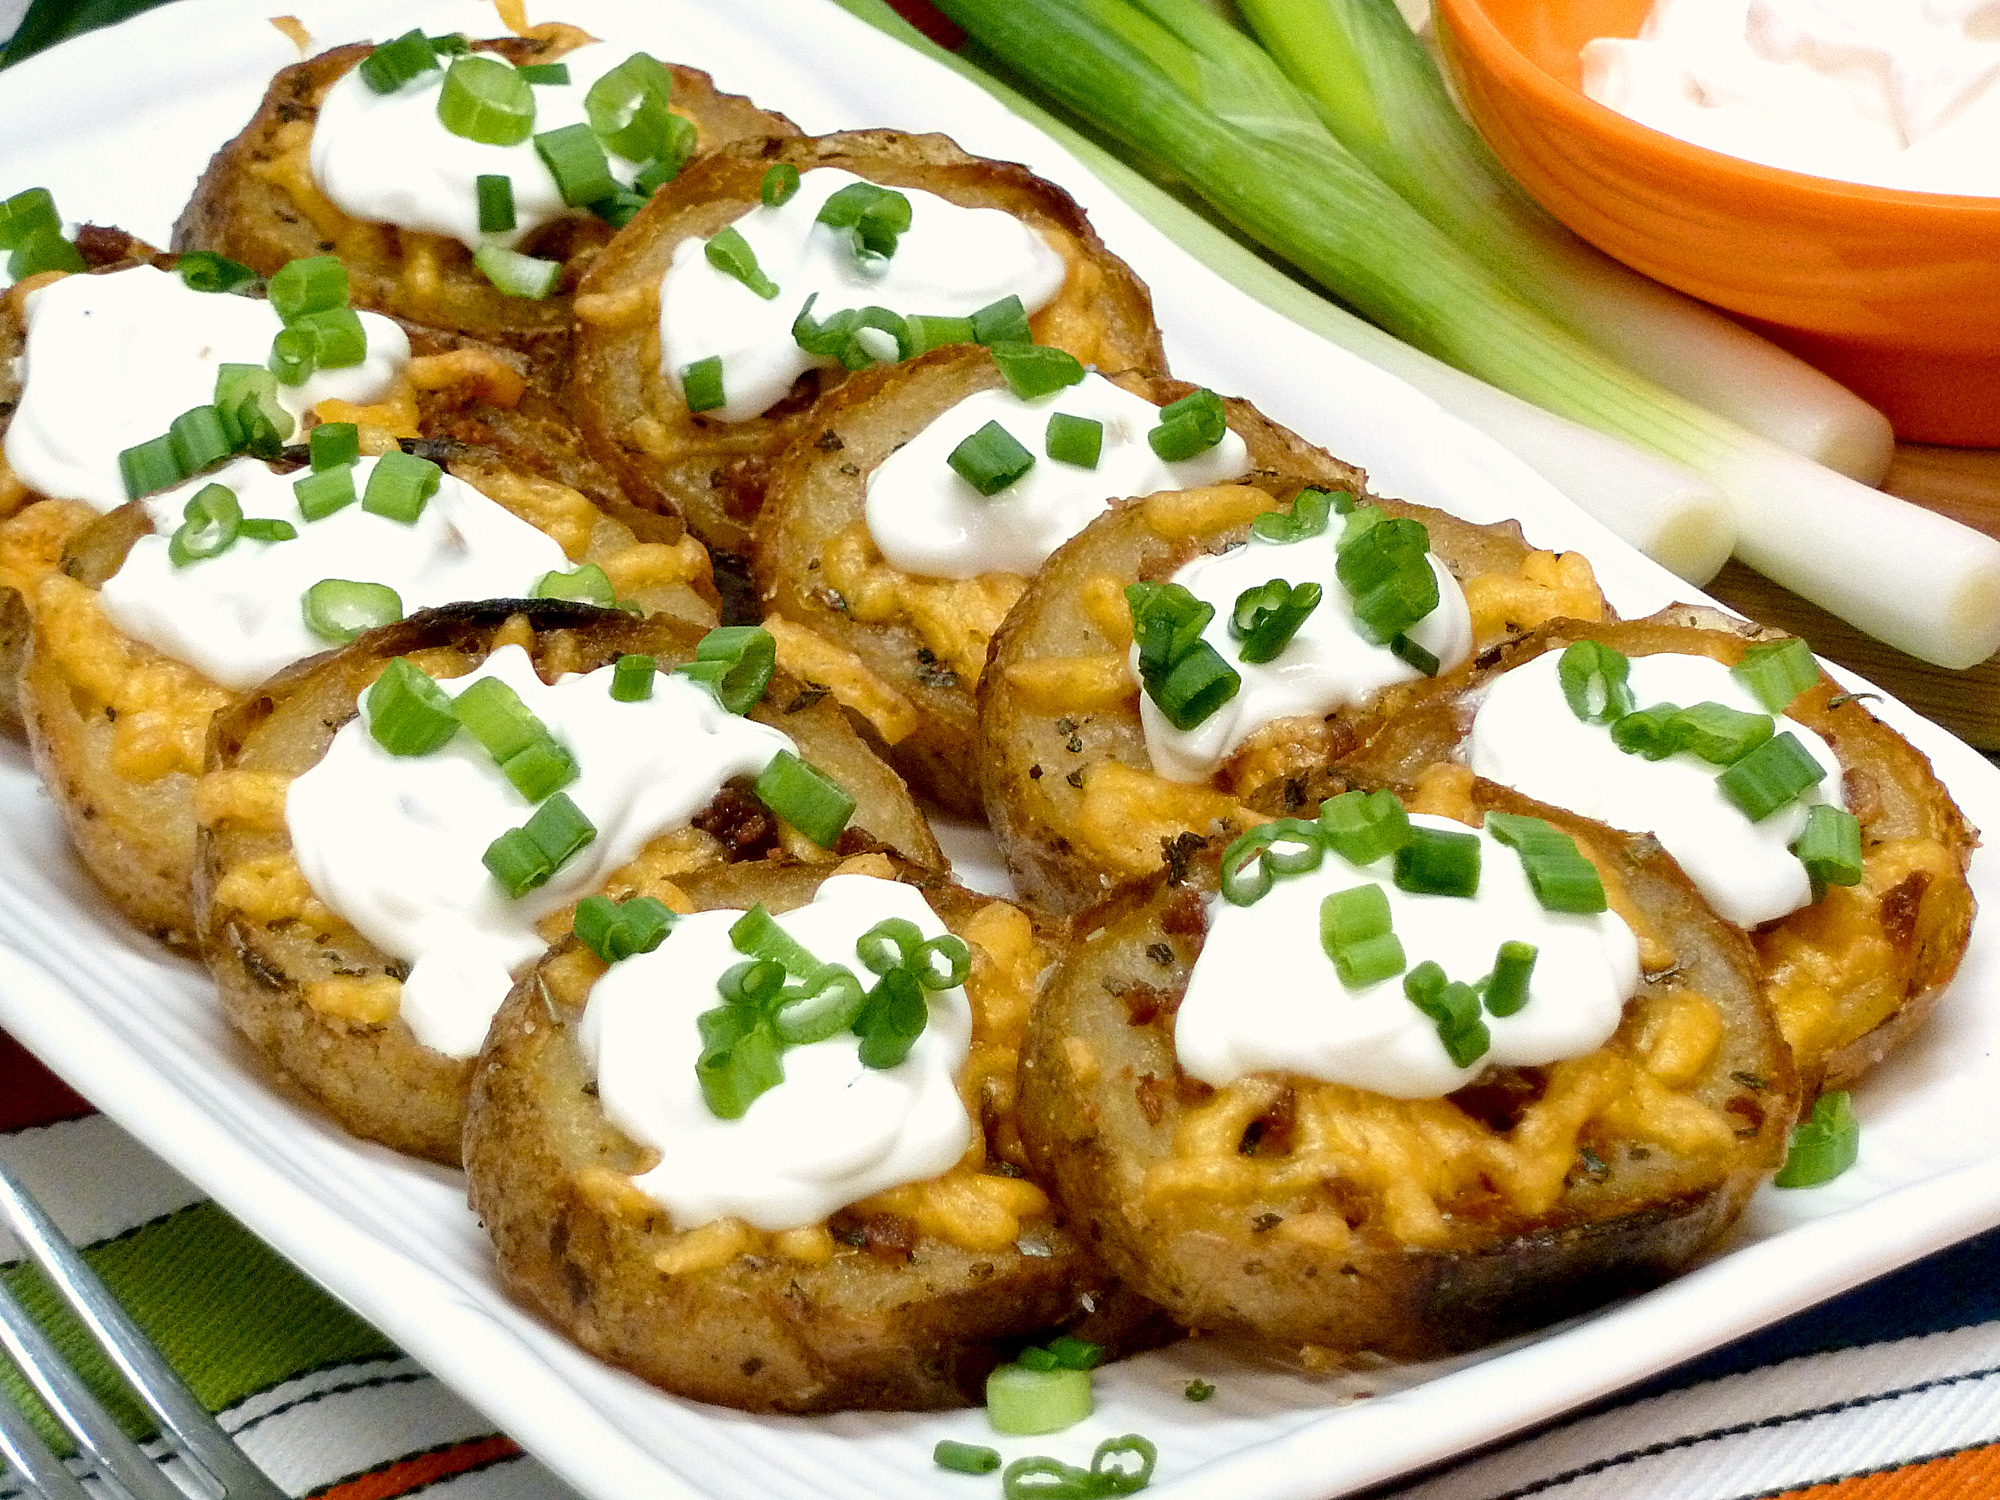 Crispy baked potato slabs are loaded with all of your favorite potato skin flavors.